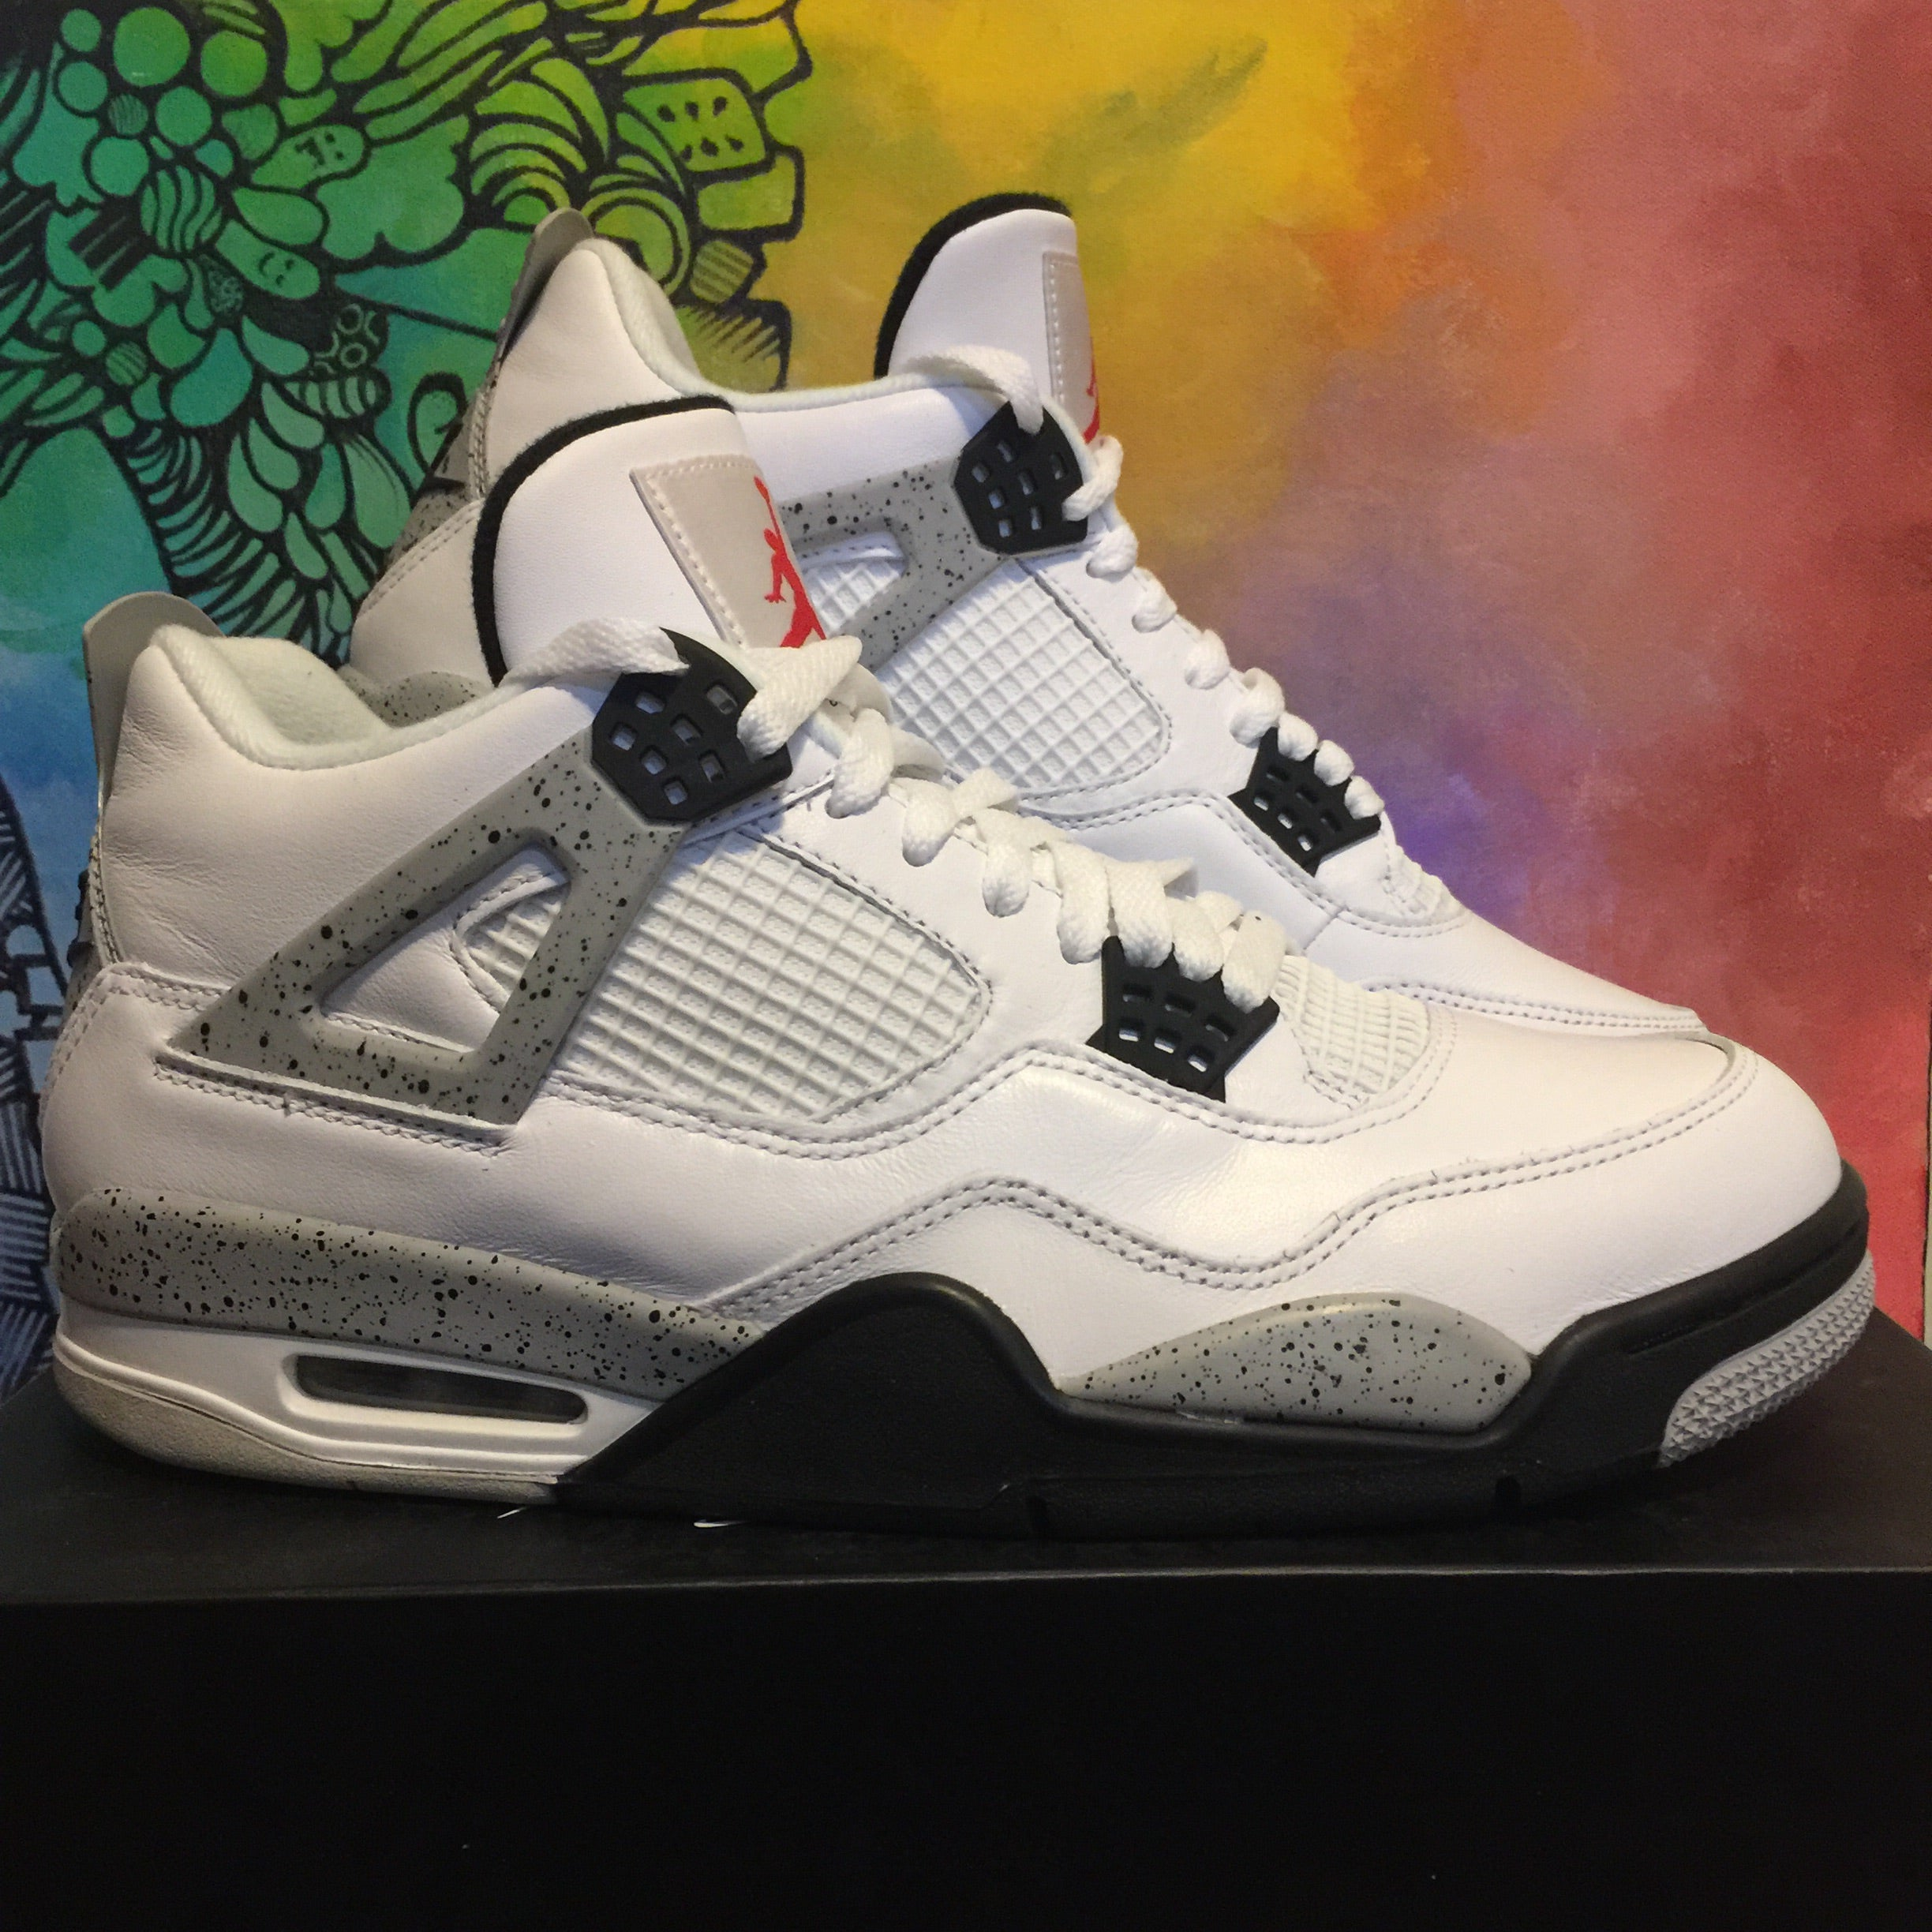 buy popular 50442 00456 Air Jordan Retro 4 OG Cement - Size 10.5